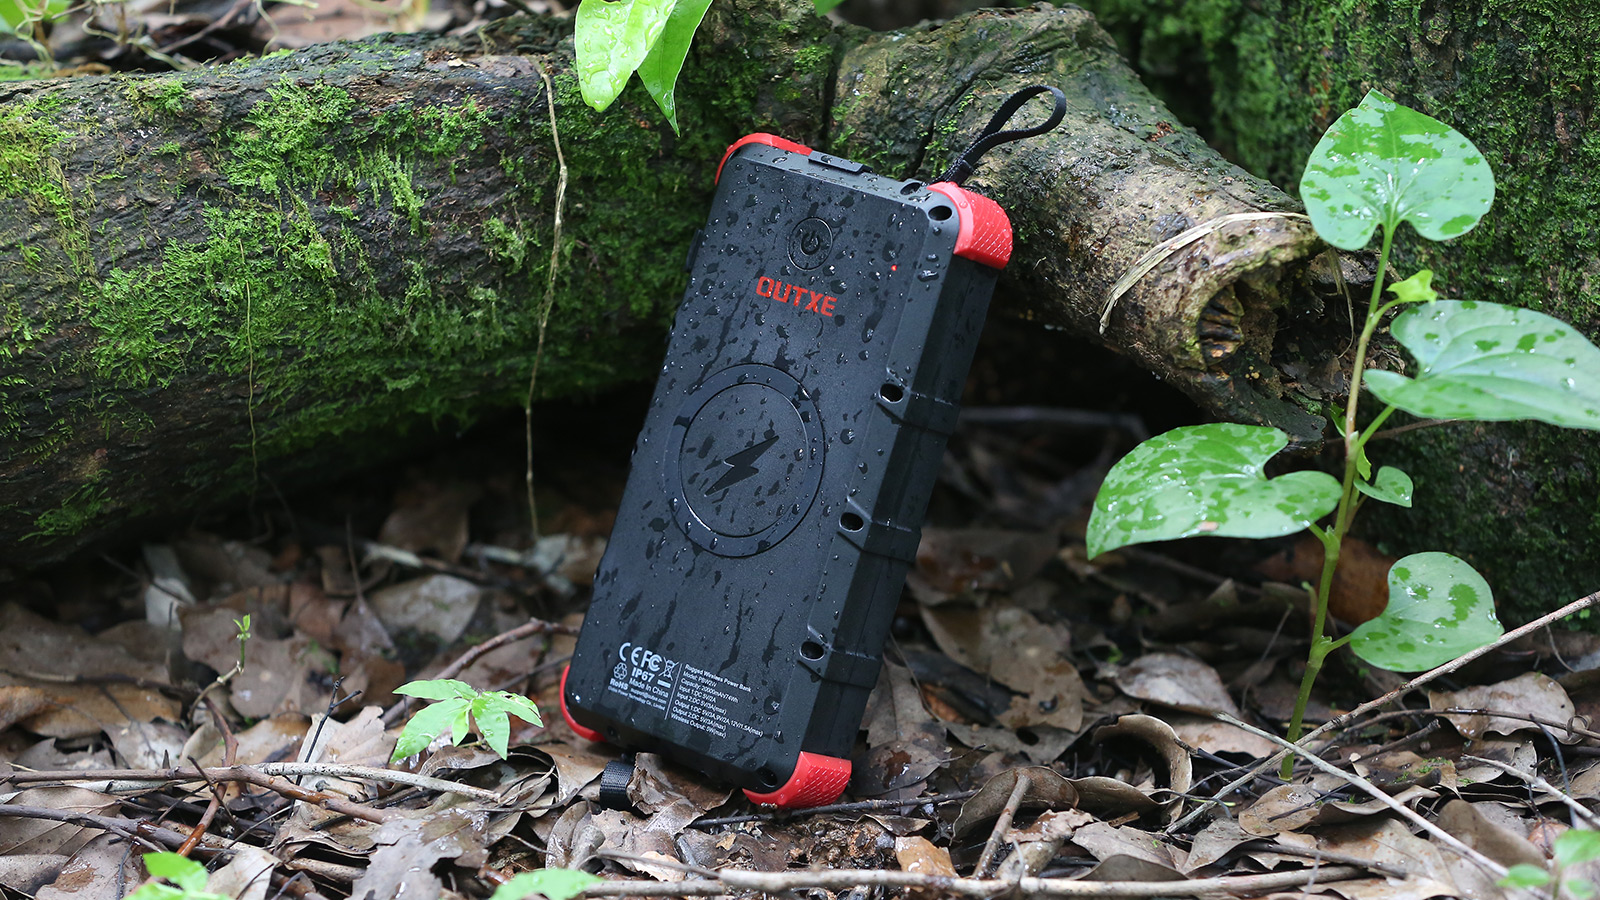 OUTXE W20 Waterproof Solar Power Bank